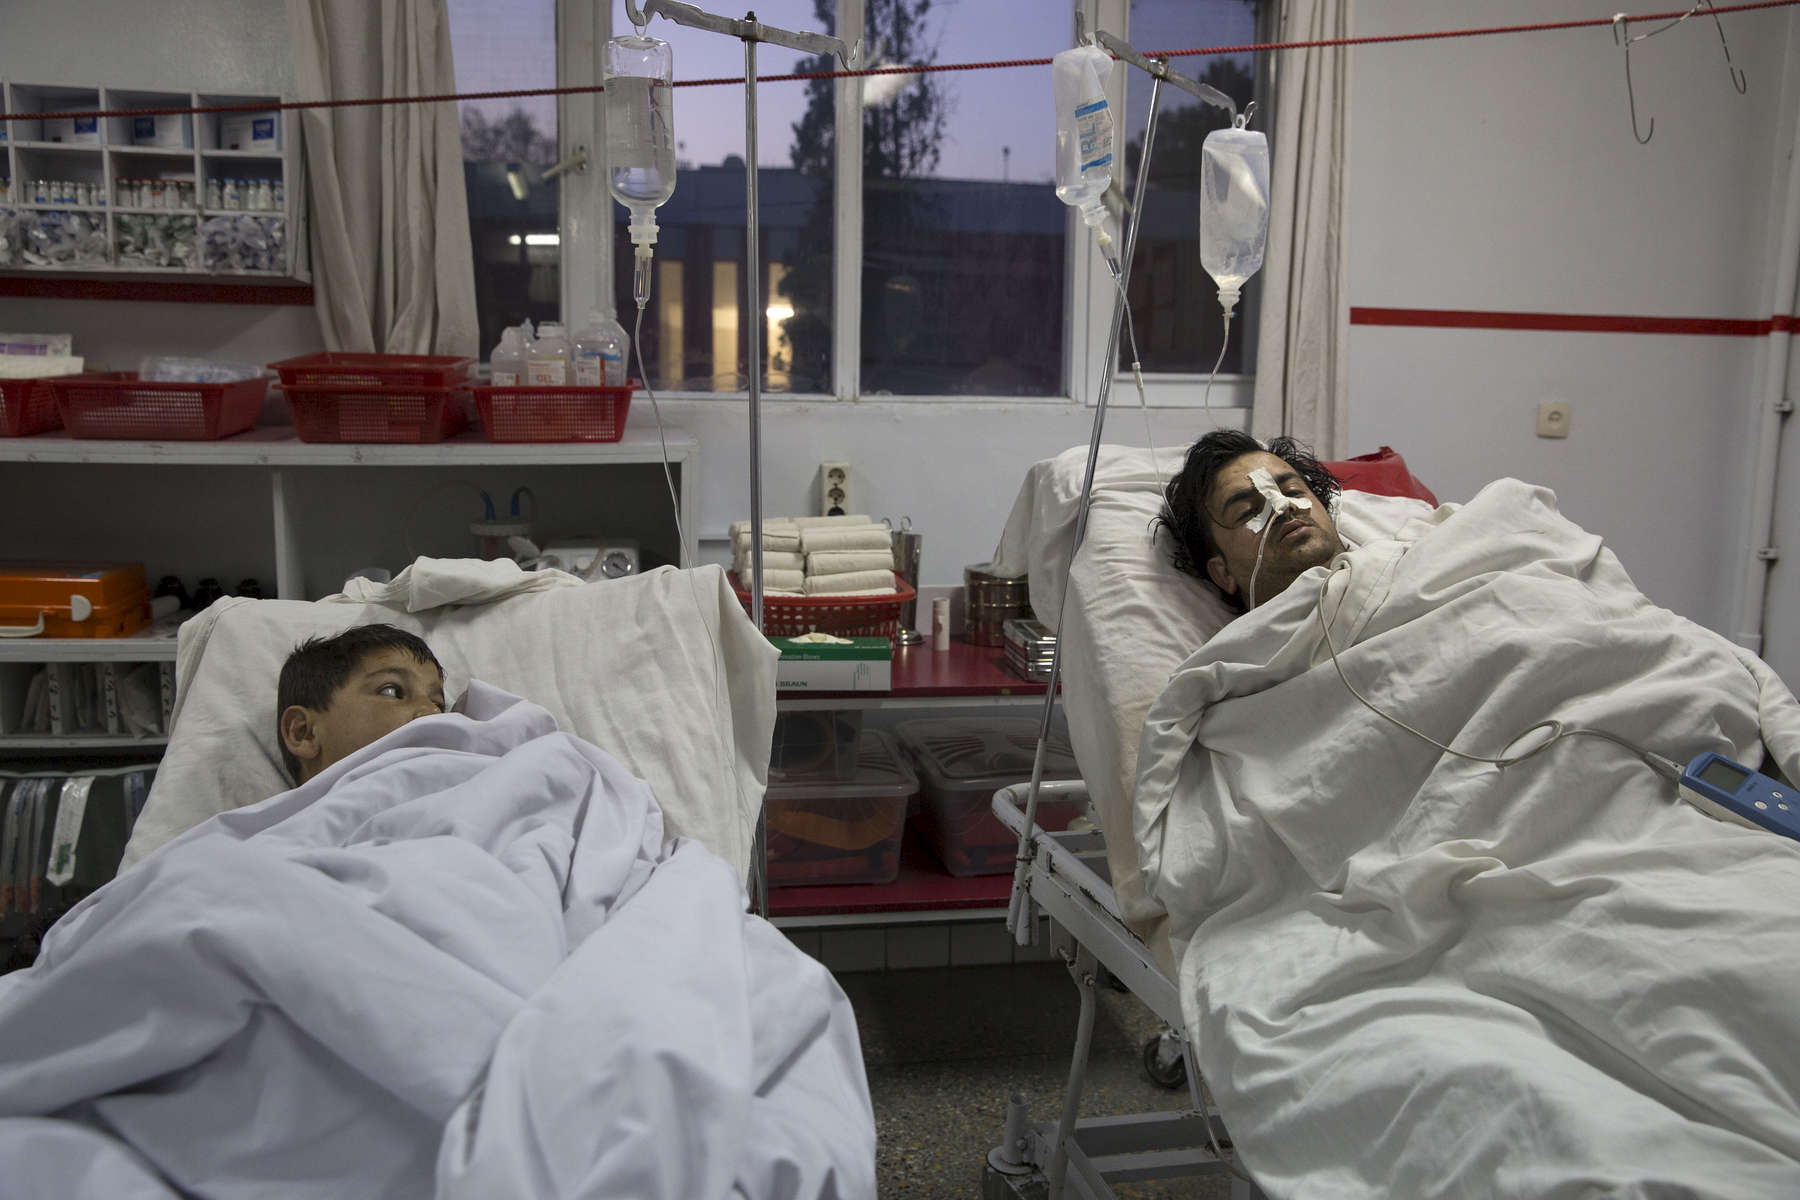 KABUL, AFGHANISTAN -MARCH 21, 2016:  Kabul on February 28, 2016. In the emergency room a boy over at another patient getting treatment at the Emergency hospital in Kabul. Every year the UN comes out with their report documenting the unfortunate carnage from America's longest and most costly war in history. Along with the price tag estimated in the hundreds of billions, the human toll from a 2015 UN Assistance Mission To Afghanistan (UNAMA) report stated the number of Afghan civilians killed and wounded surpassed 11,000.  which was the deadliest on record for civilians in Afghanistan since the US-led invasion more than 14 years ago.